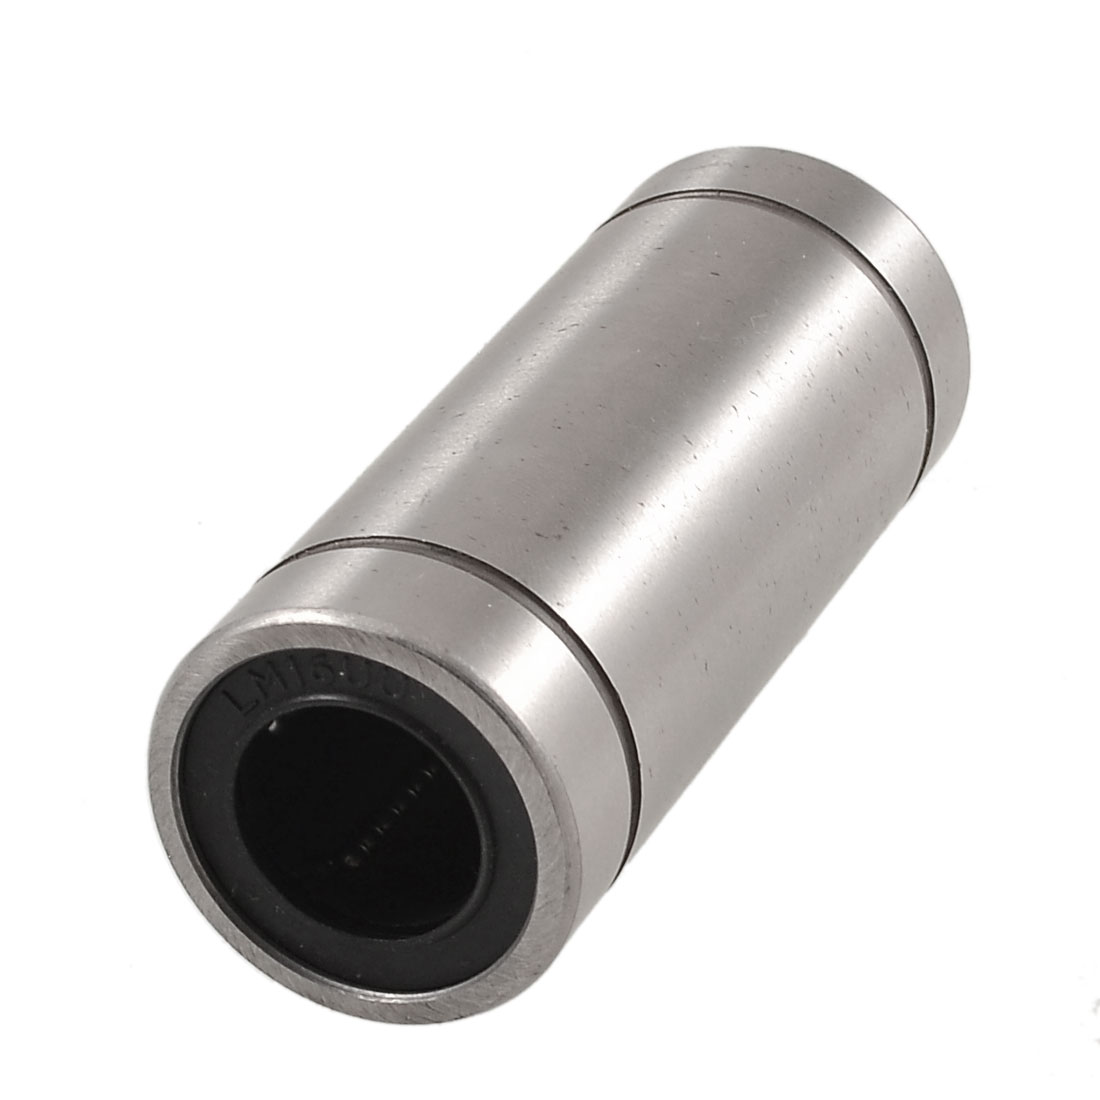 LM16LUU Cylinder Shape Carbon Steel Linear Motion Ball Bearing 16x28x70mm